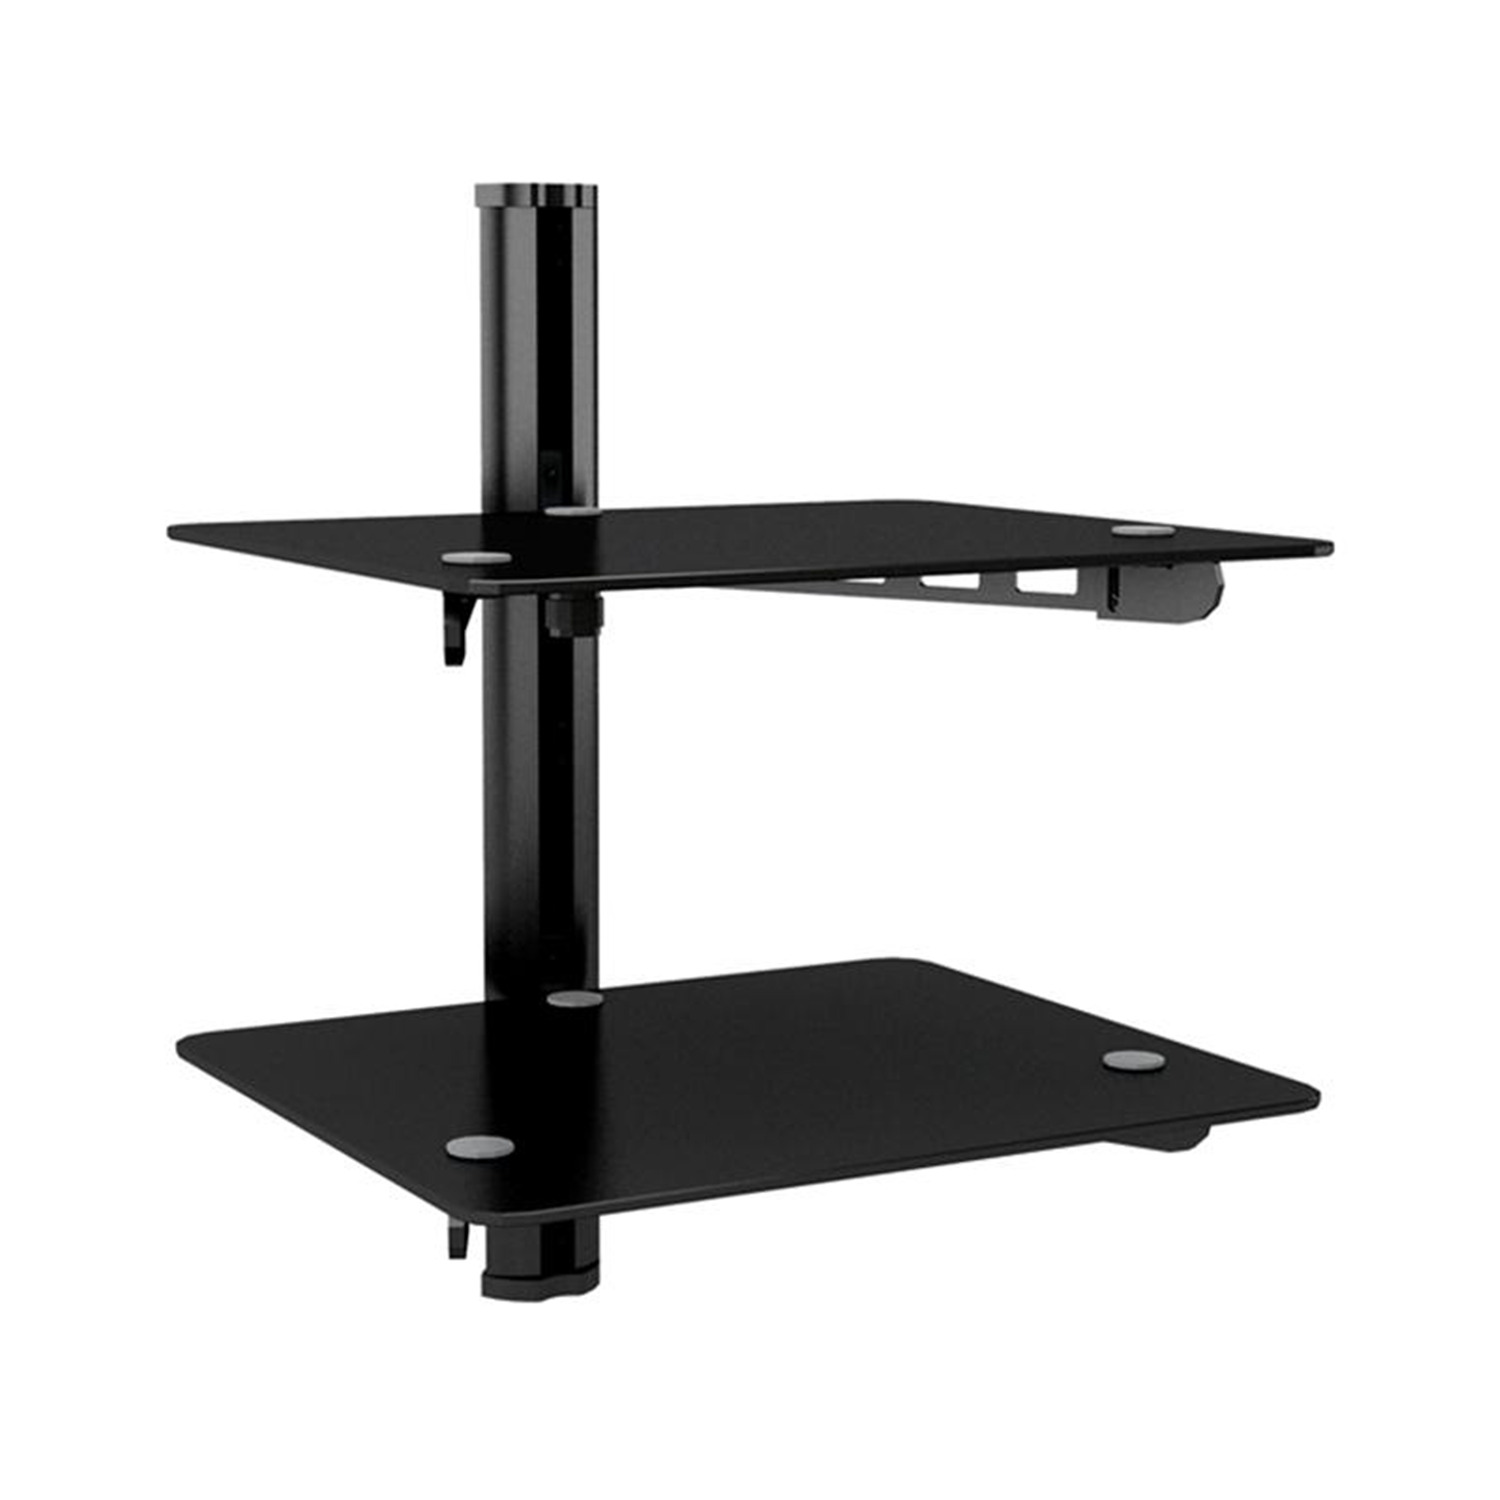 sonax component wall shelf by oj commerce cs 2180. Black Bedroom Furniture Sets. Home Design Ideas